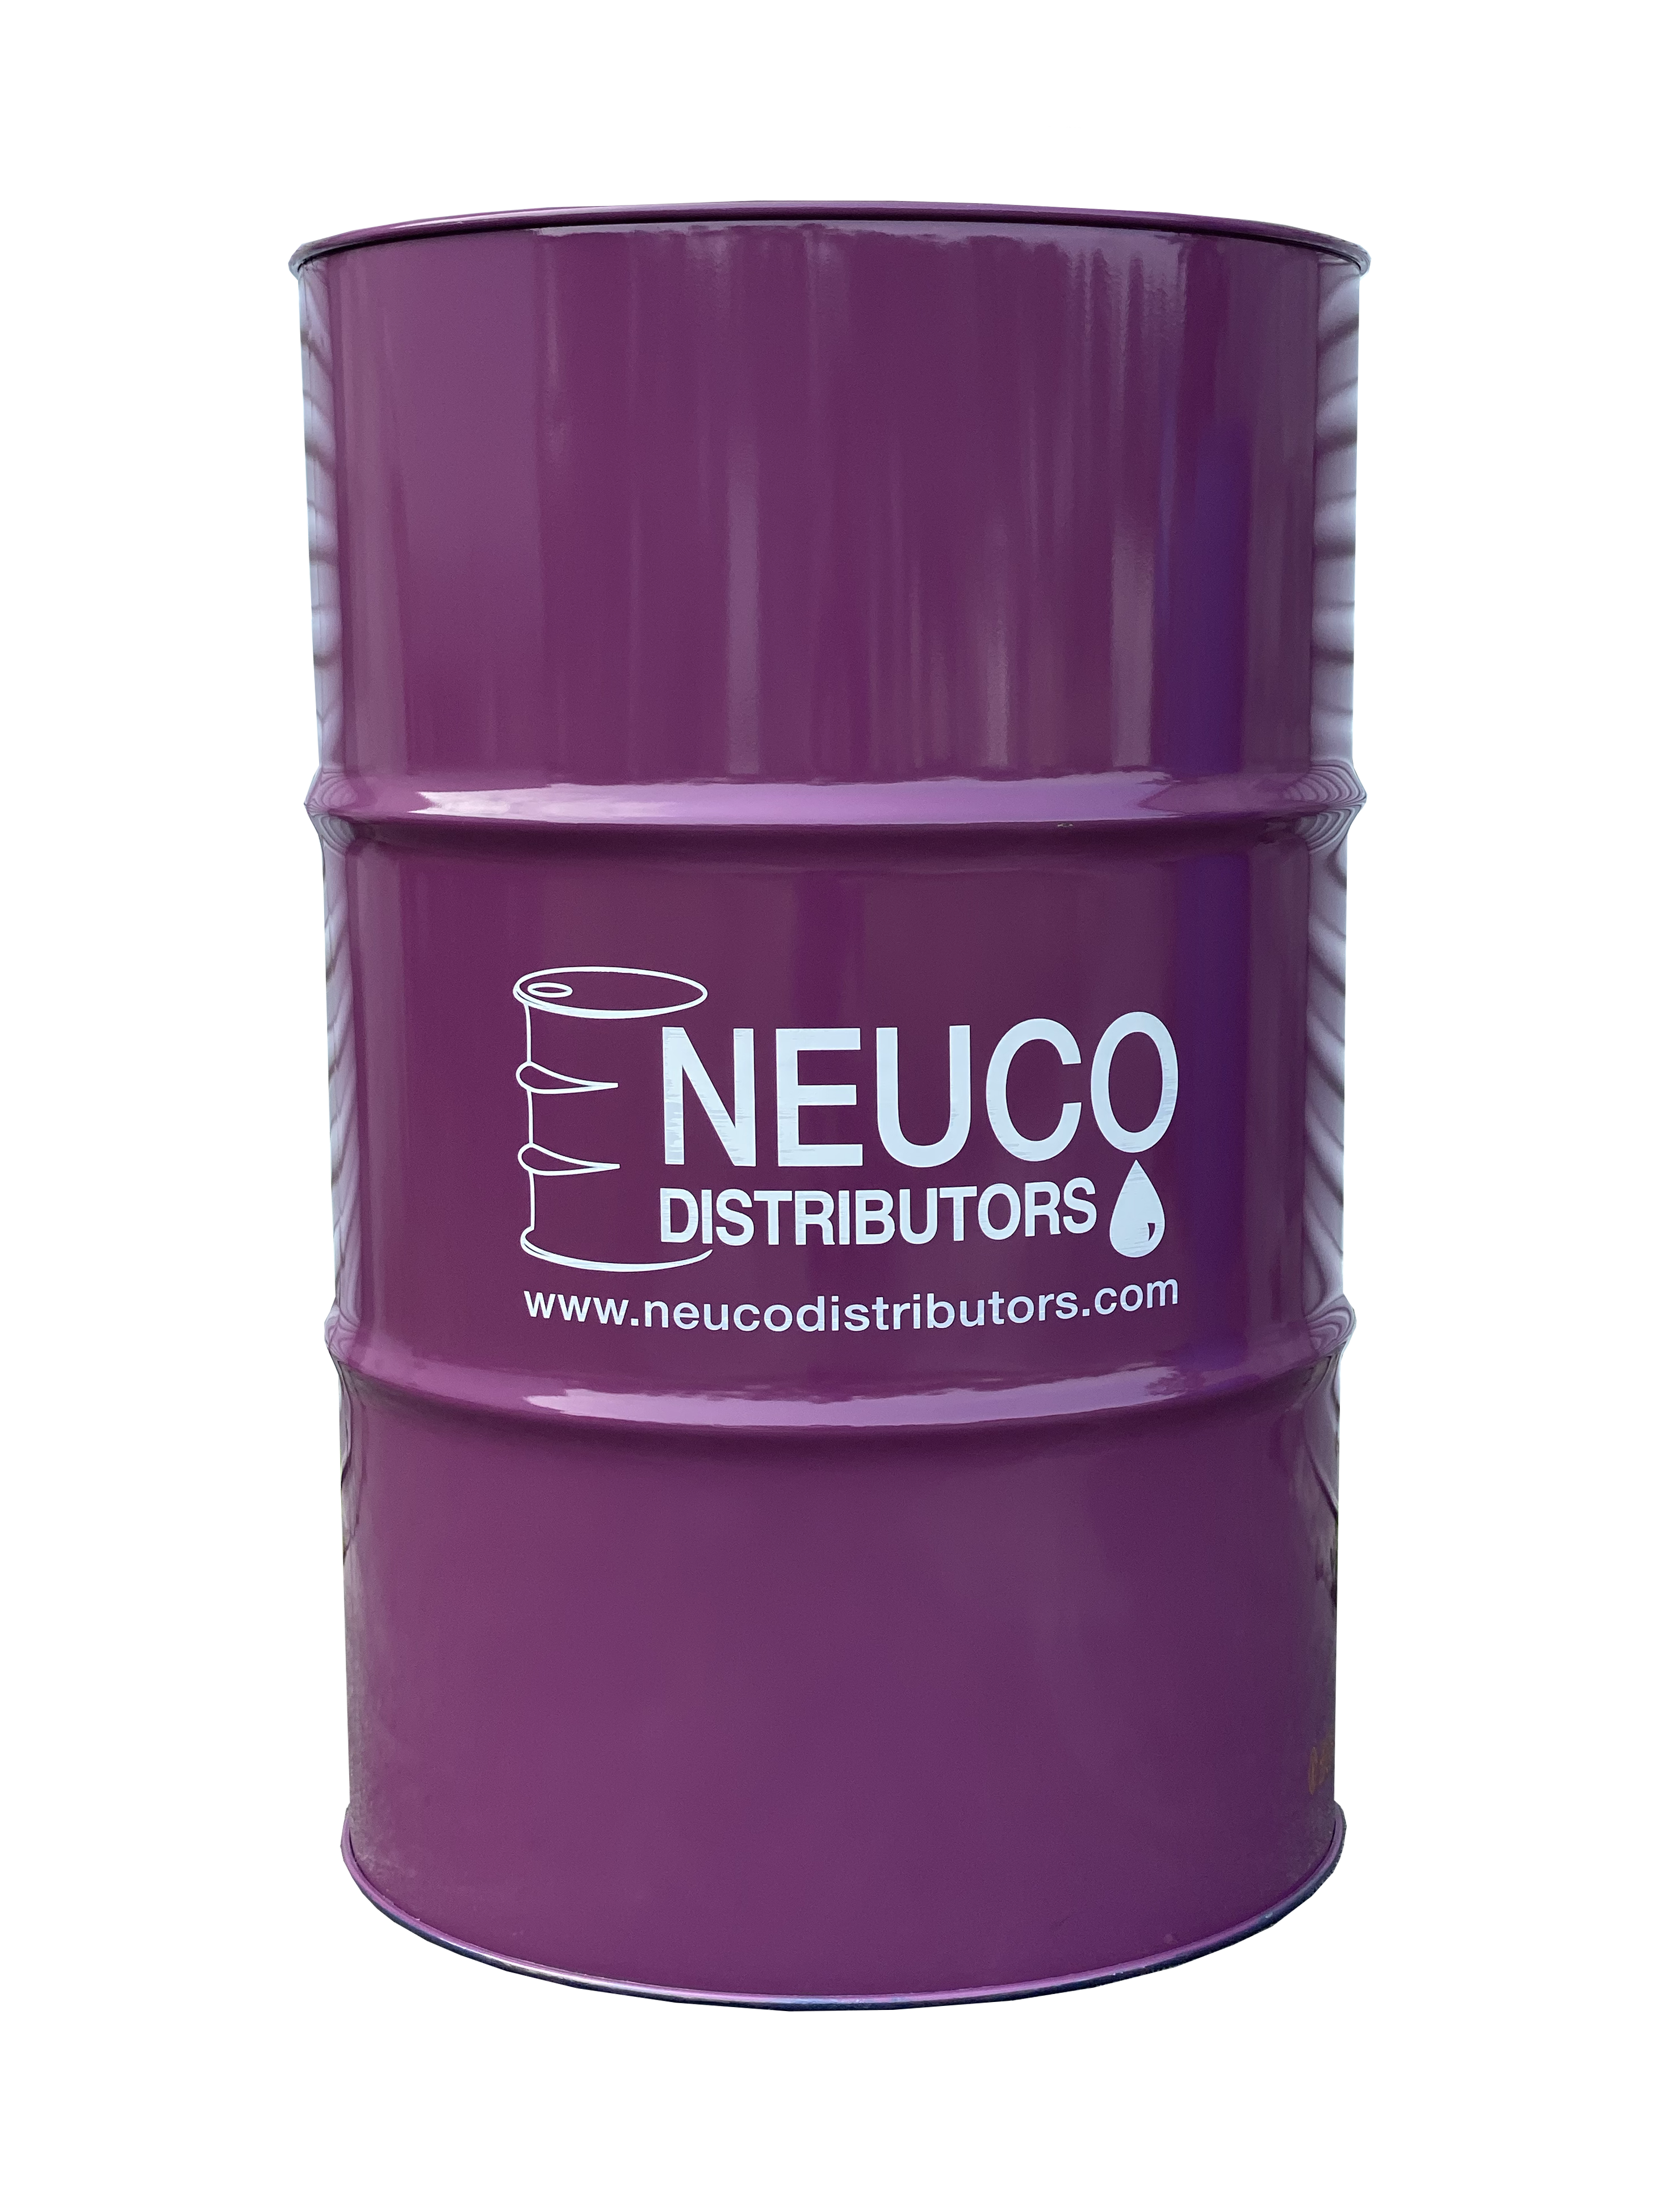 Picture of purple 55 gallon drum with Neuco logo